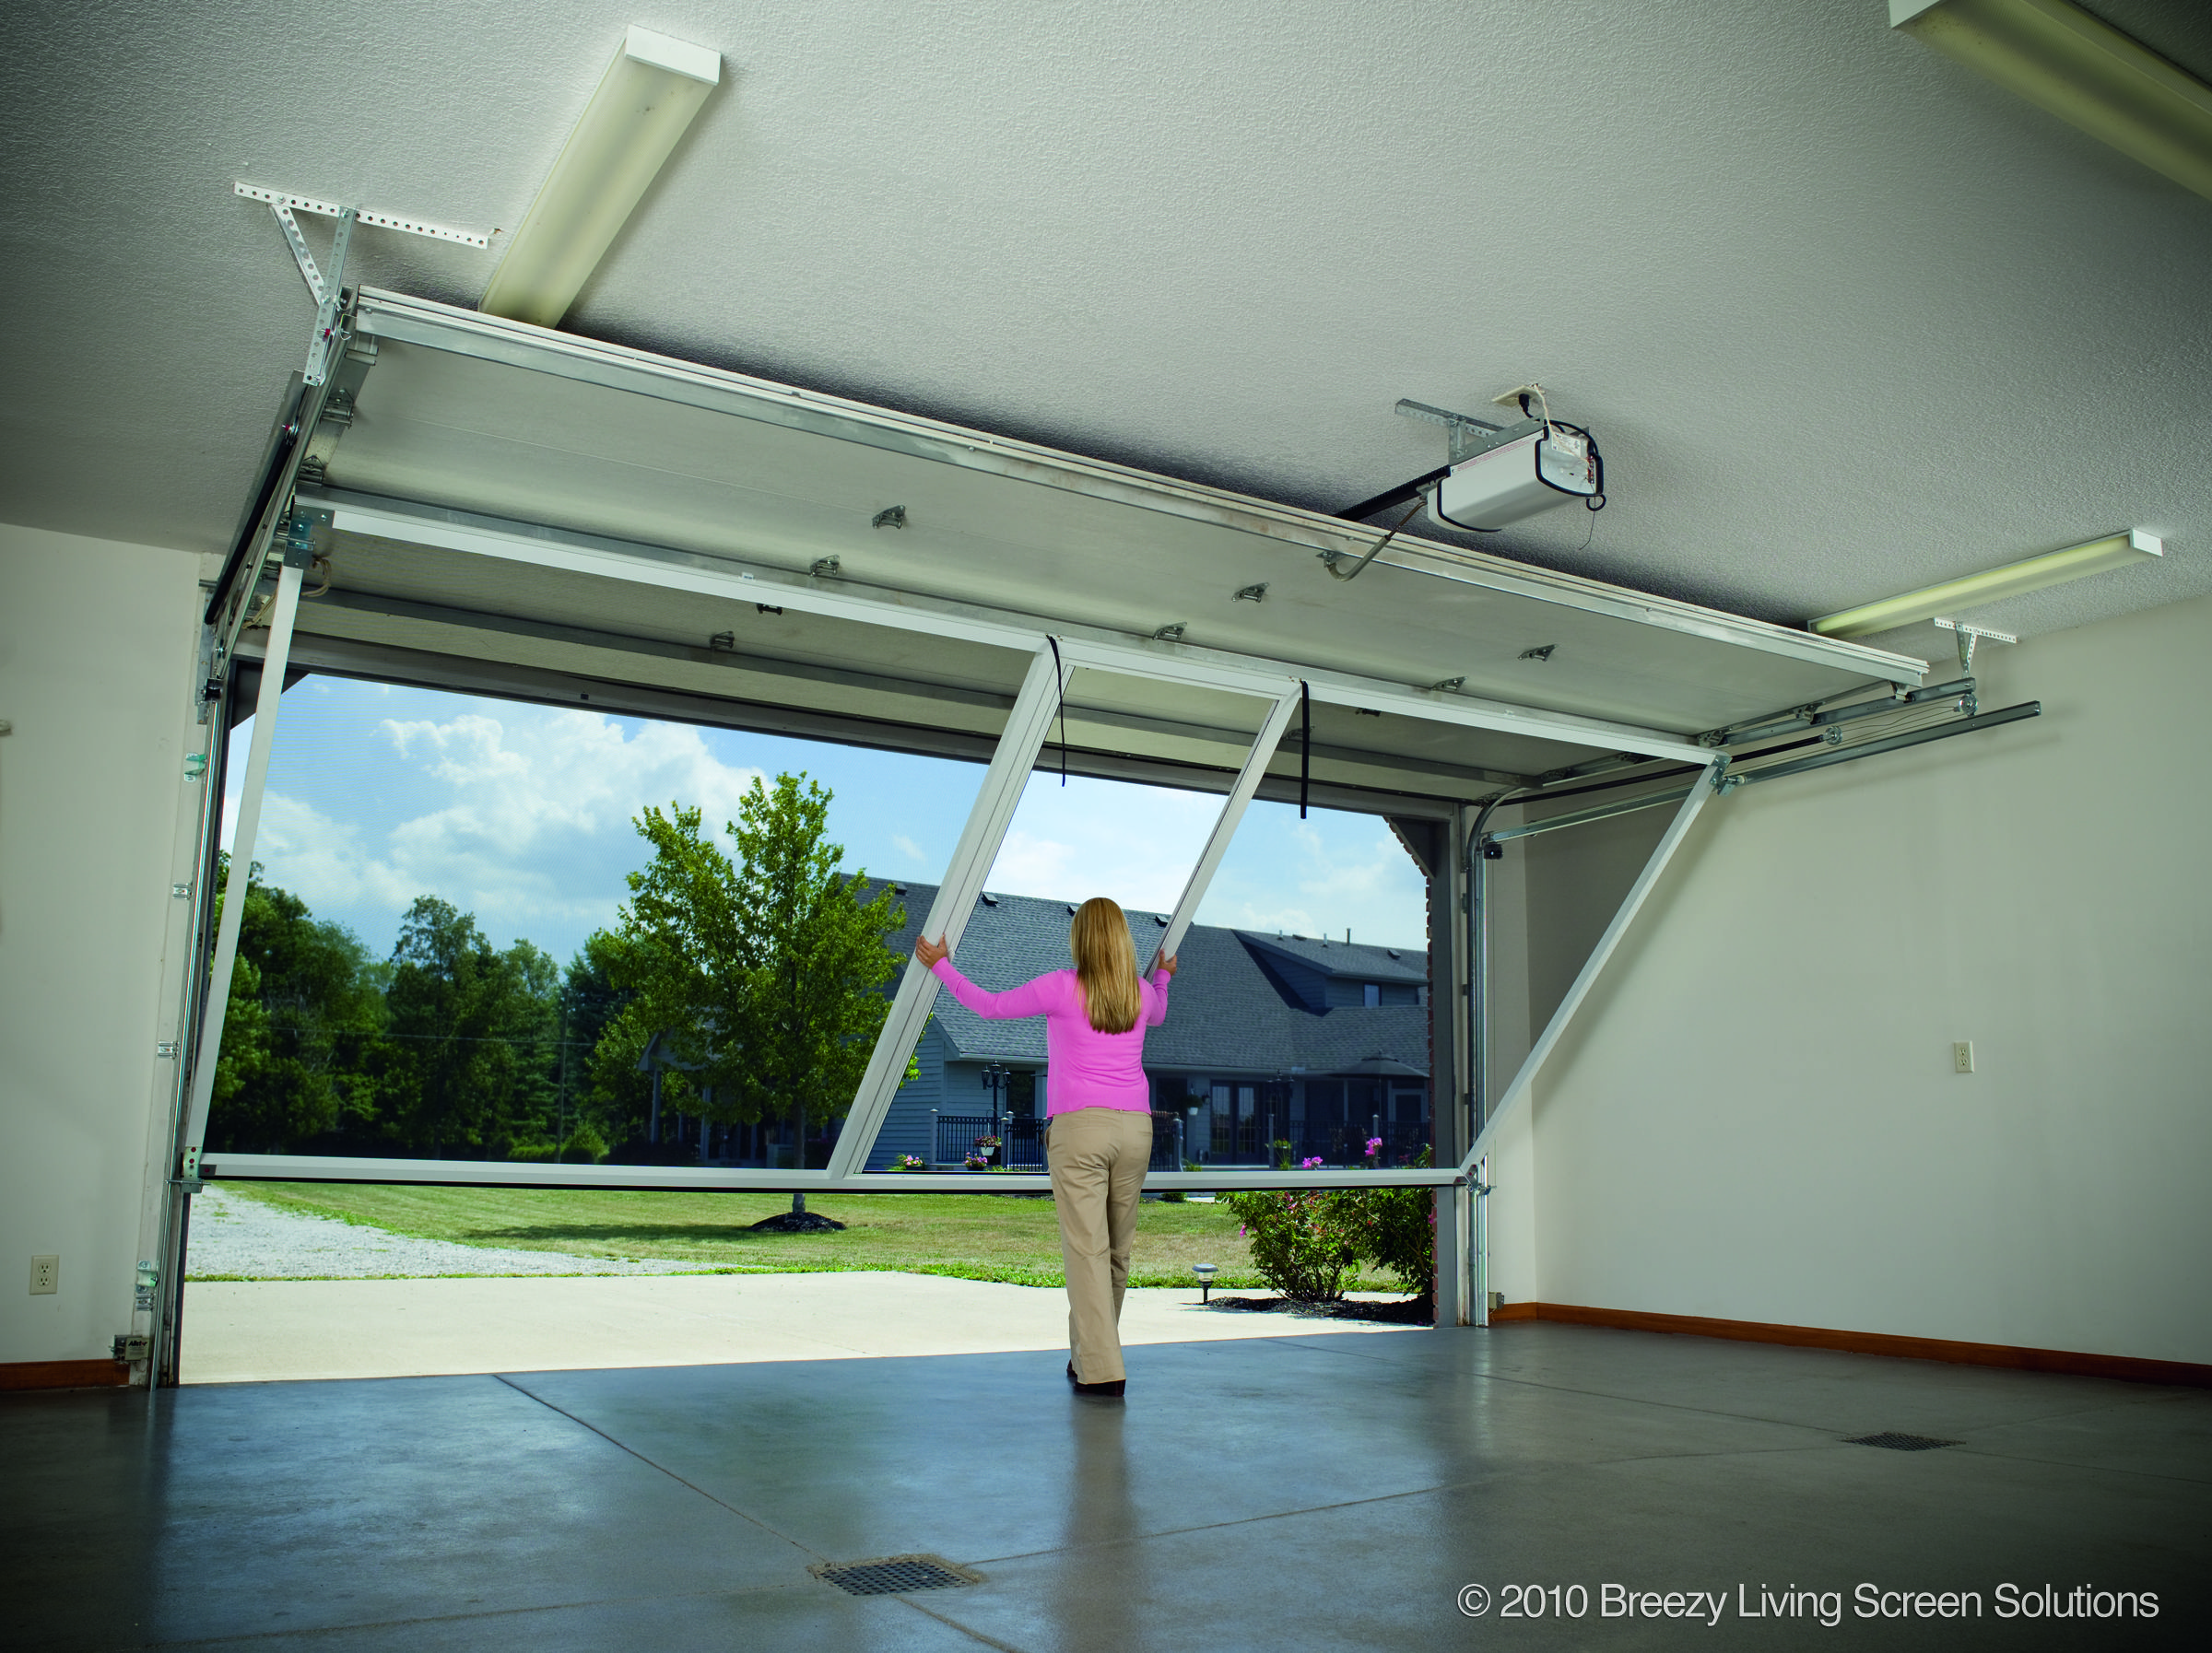 Garage screen system lifestyle garage screen door contains a garage screen system lifestyle garage screen door contains a retractable roll up passage door solutioingenieria Images